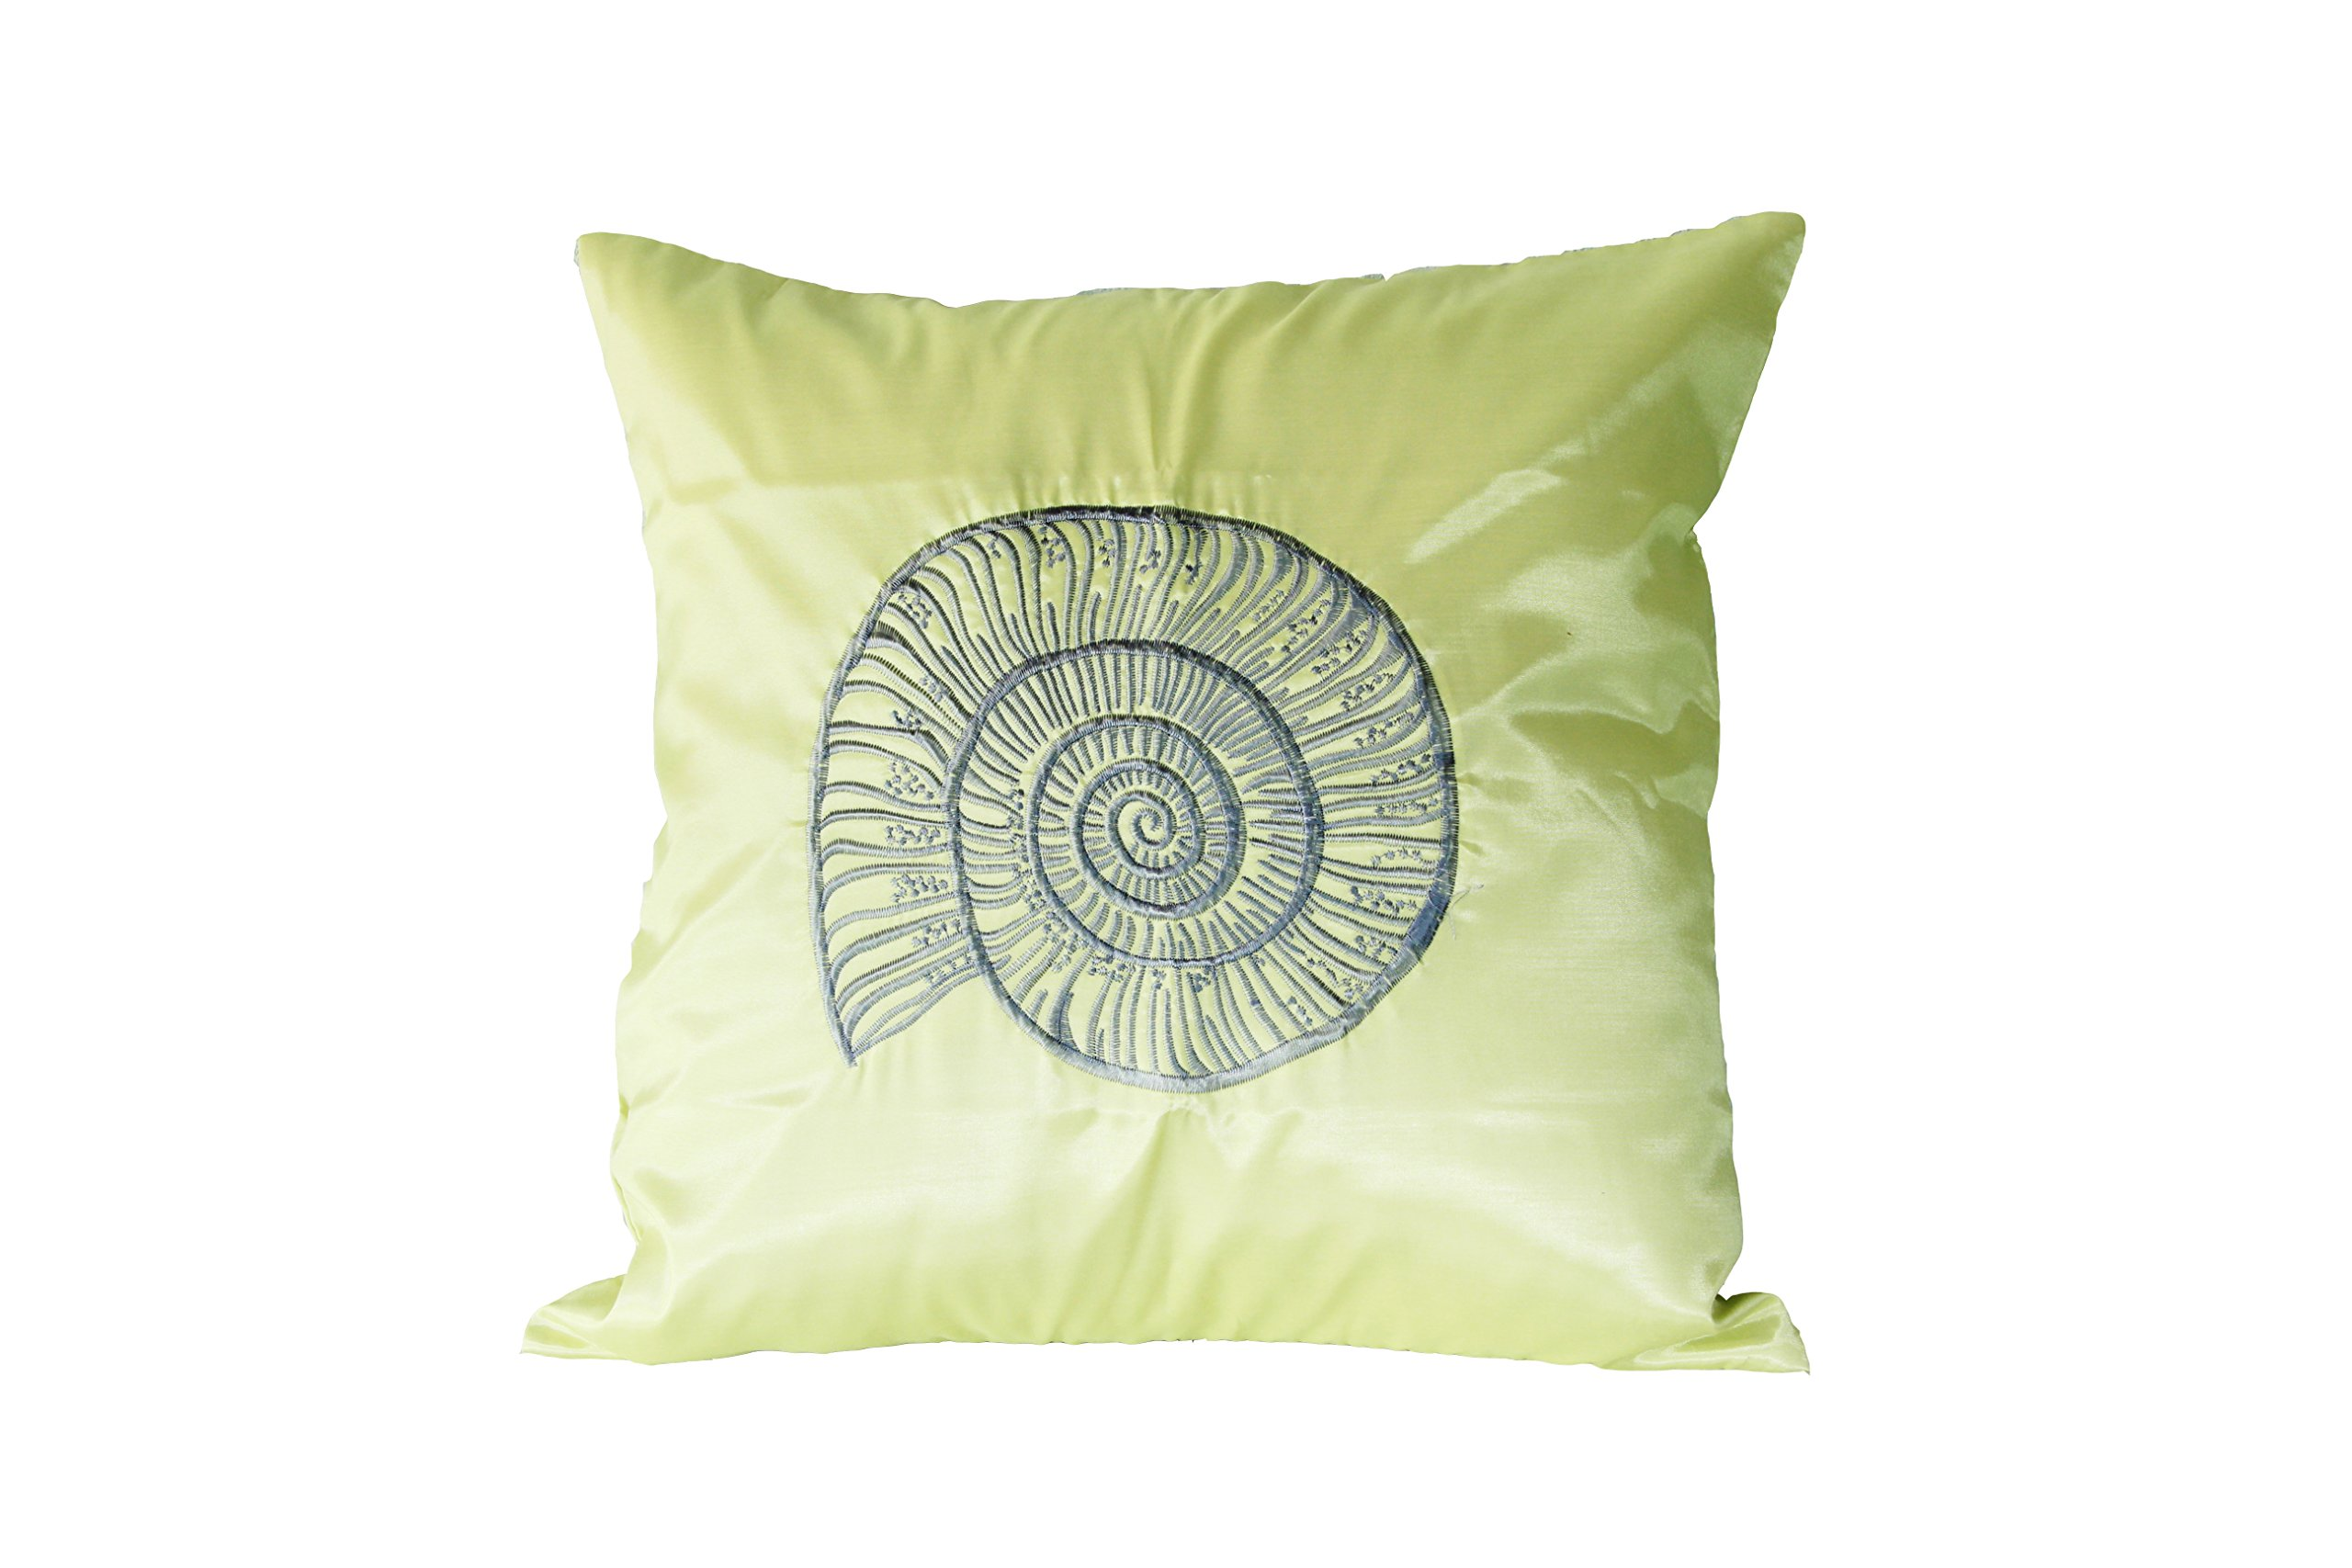 Lotus House Olive Silk Pillowcase - Sea Collection (1, Olive - Sea)